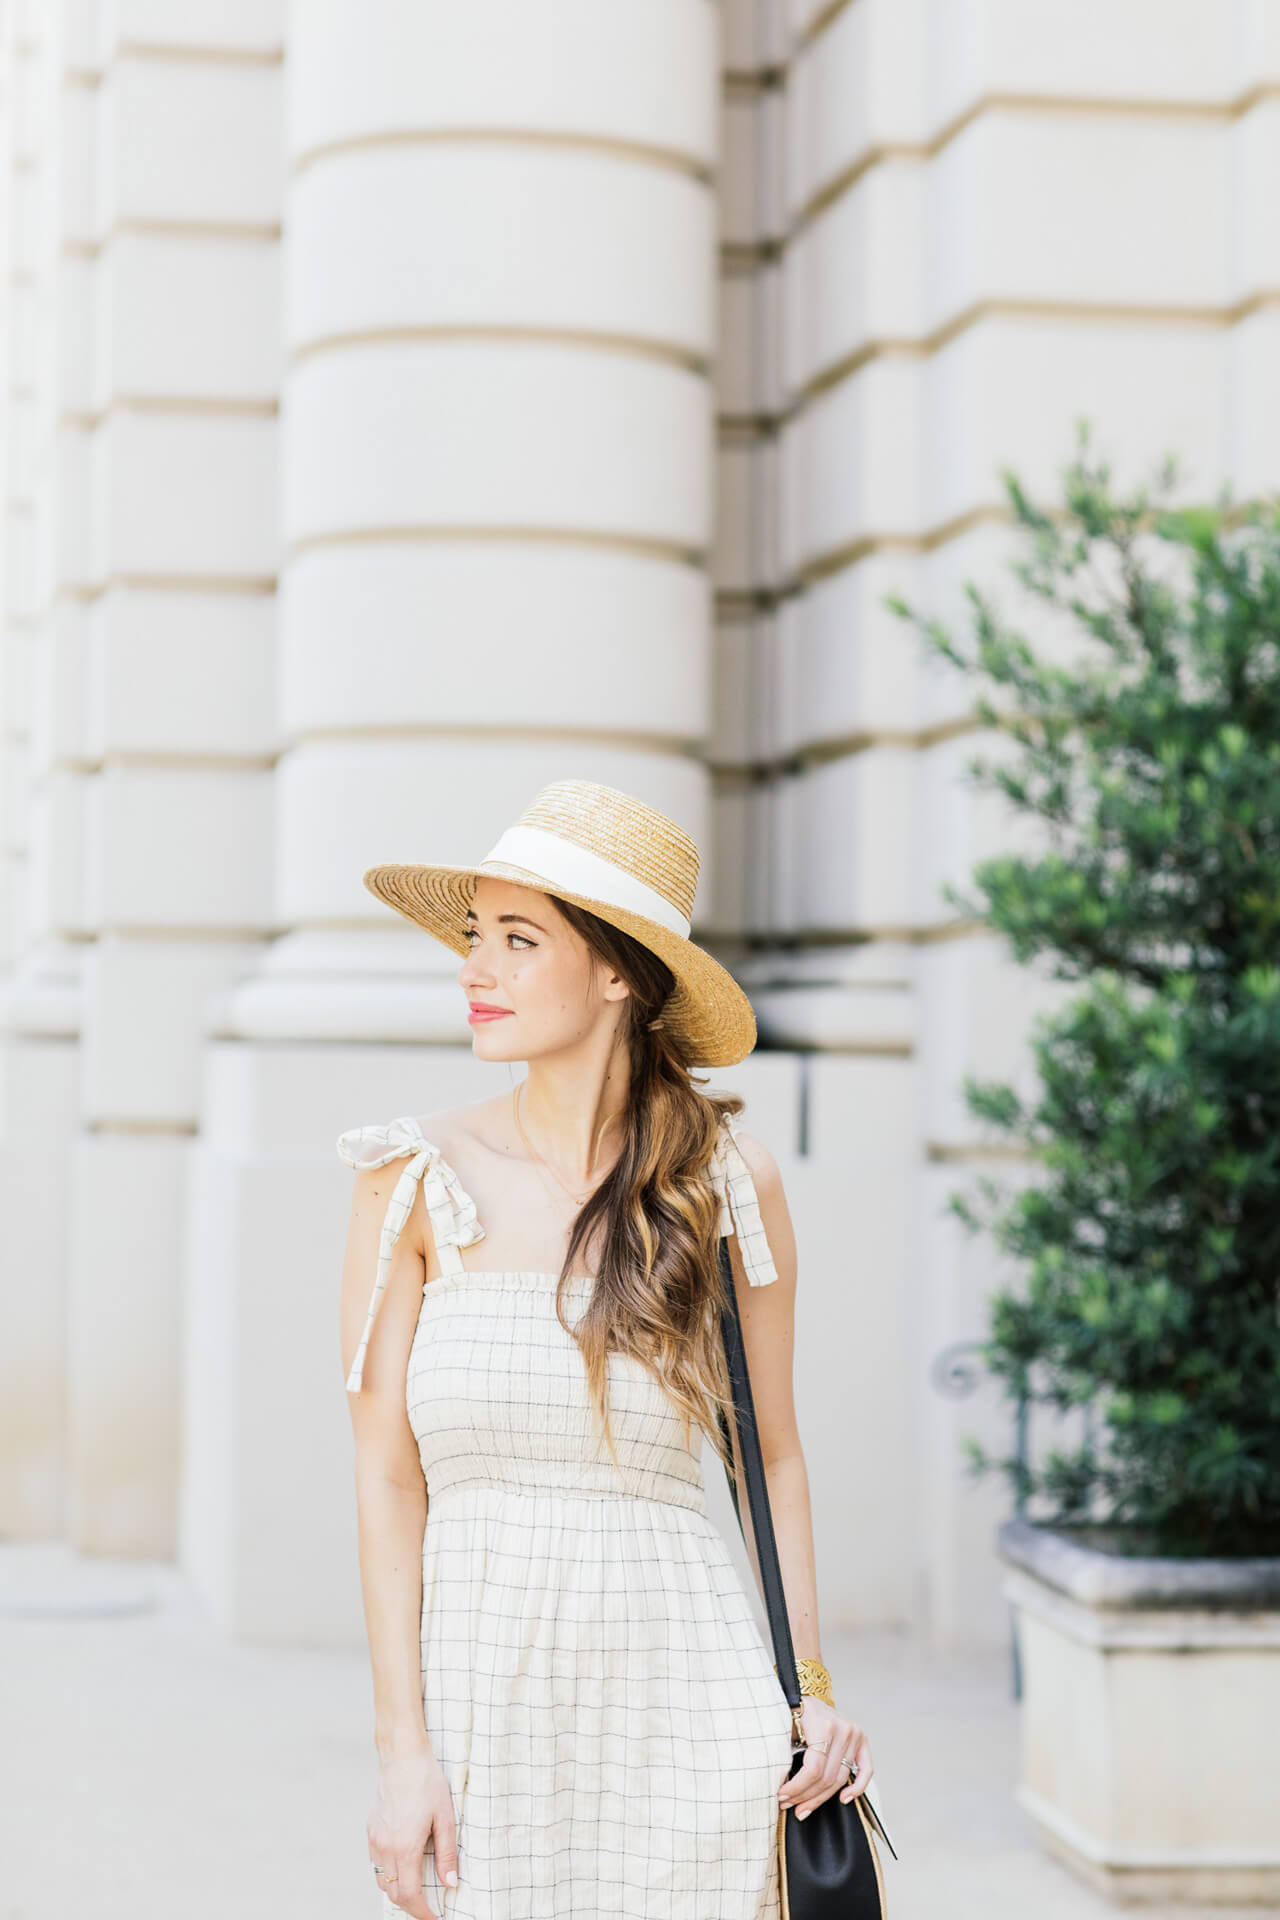 Stylish brunette highlights and straw hat inspiration